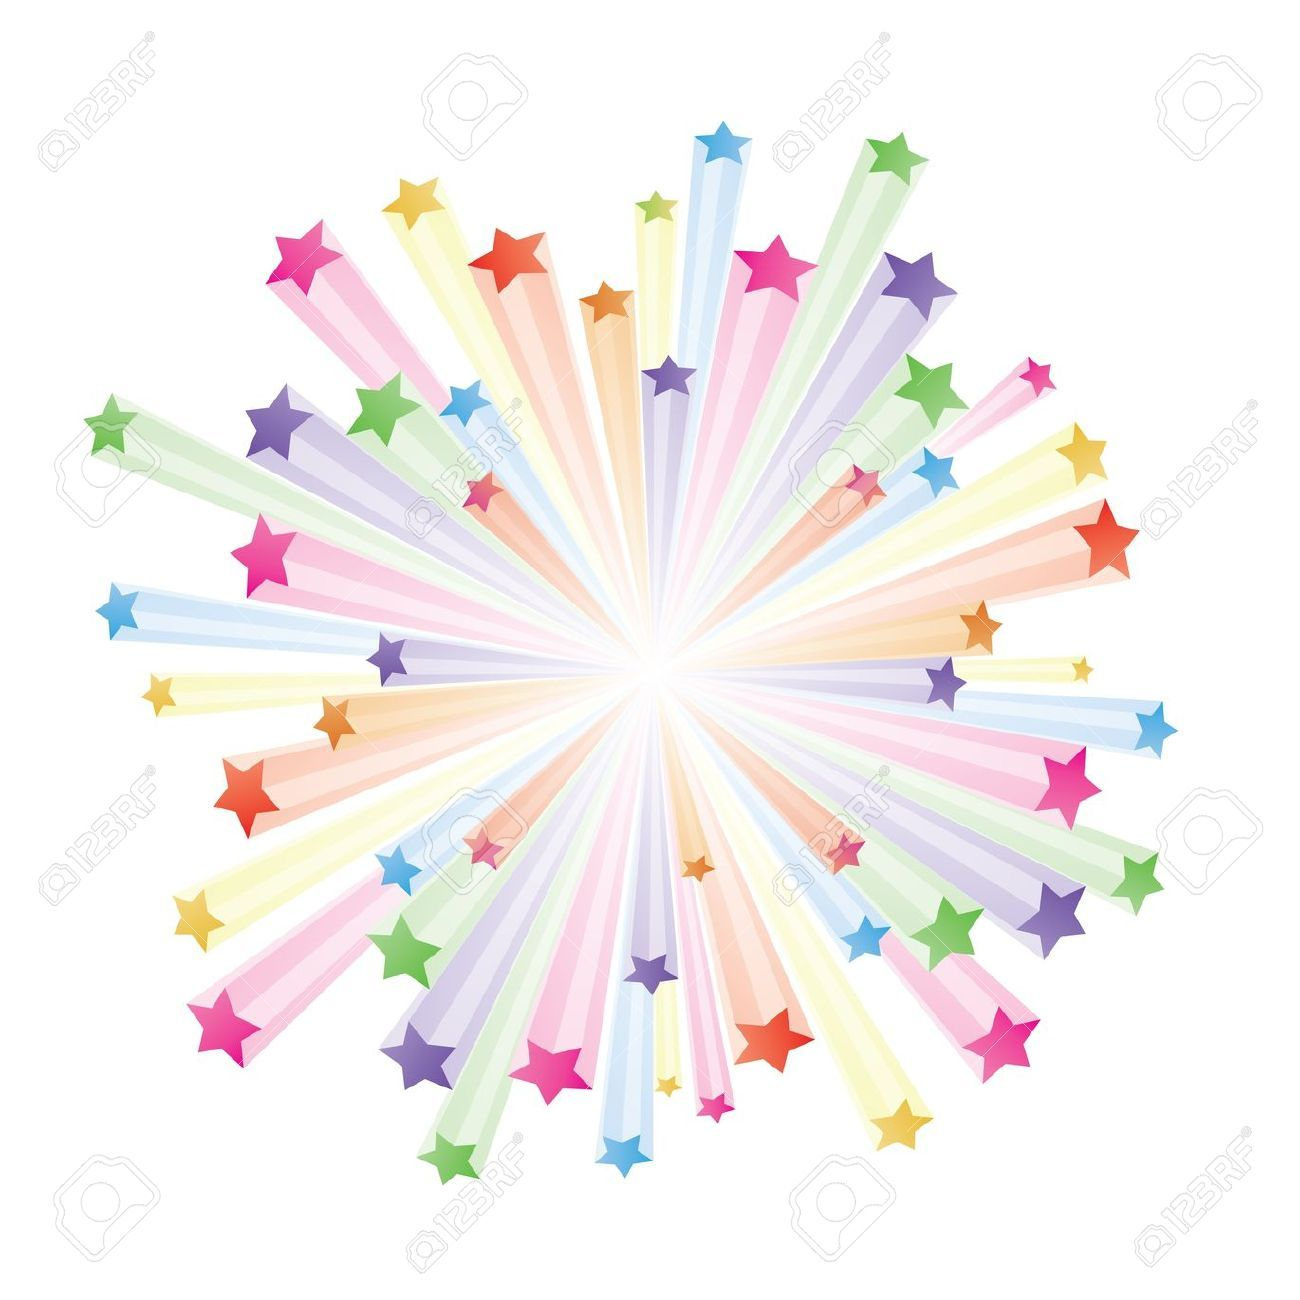 Explosion exploding star clipart 2.